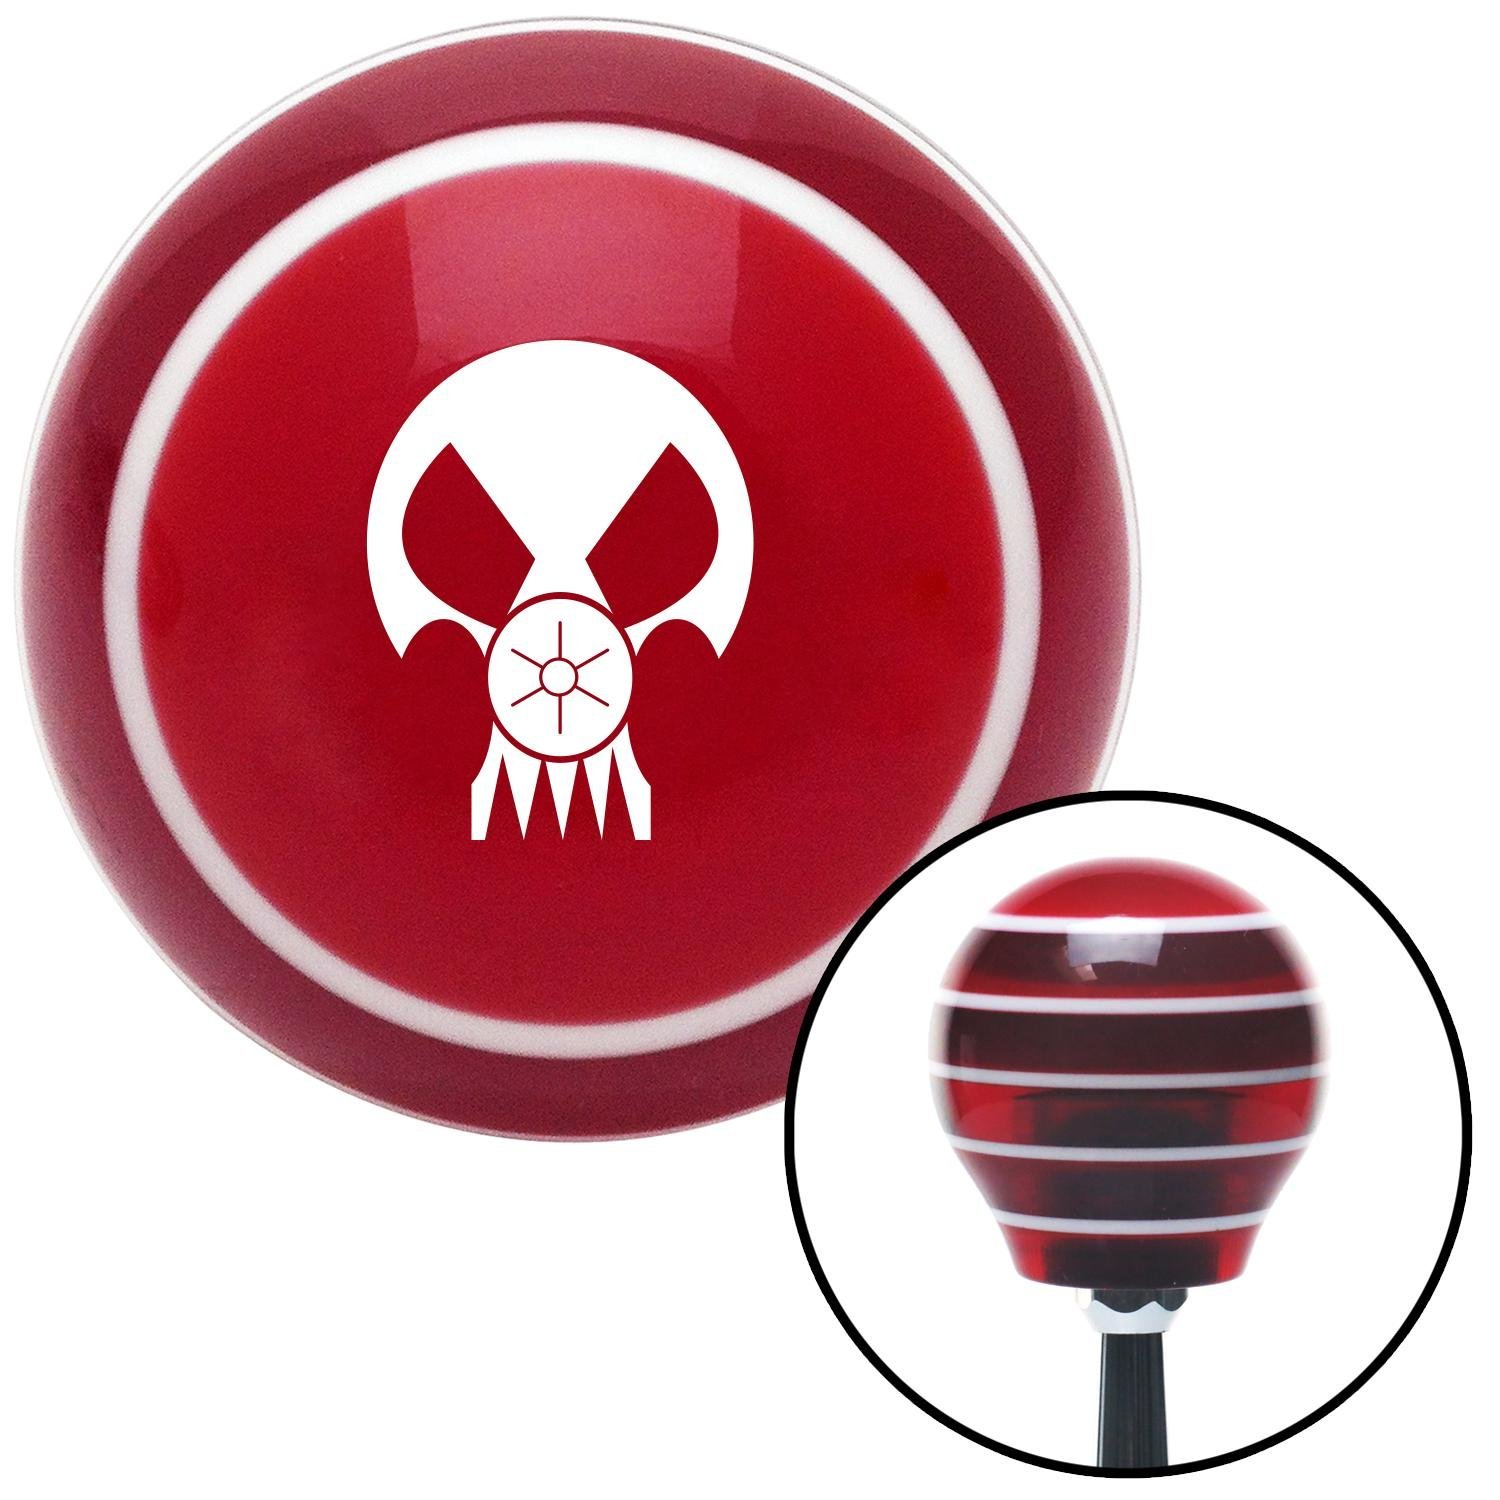 American Shifter 118591 Red Stripe Shift Knob with M16 x 1.5 Insert White Skull Gas Mask